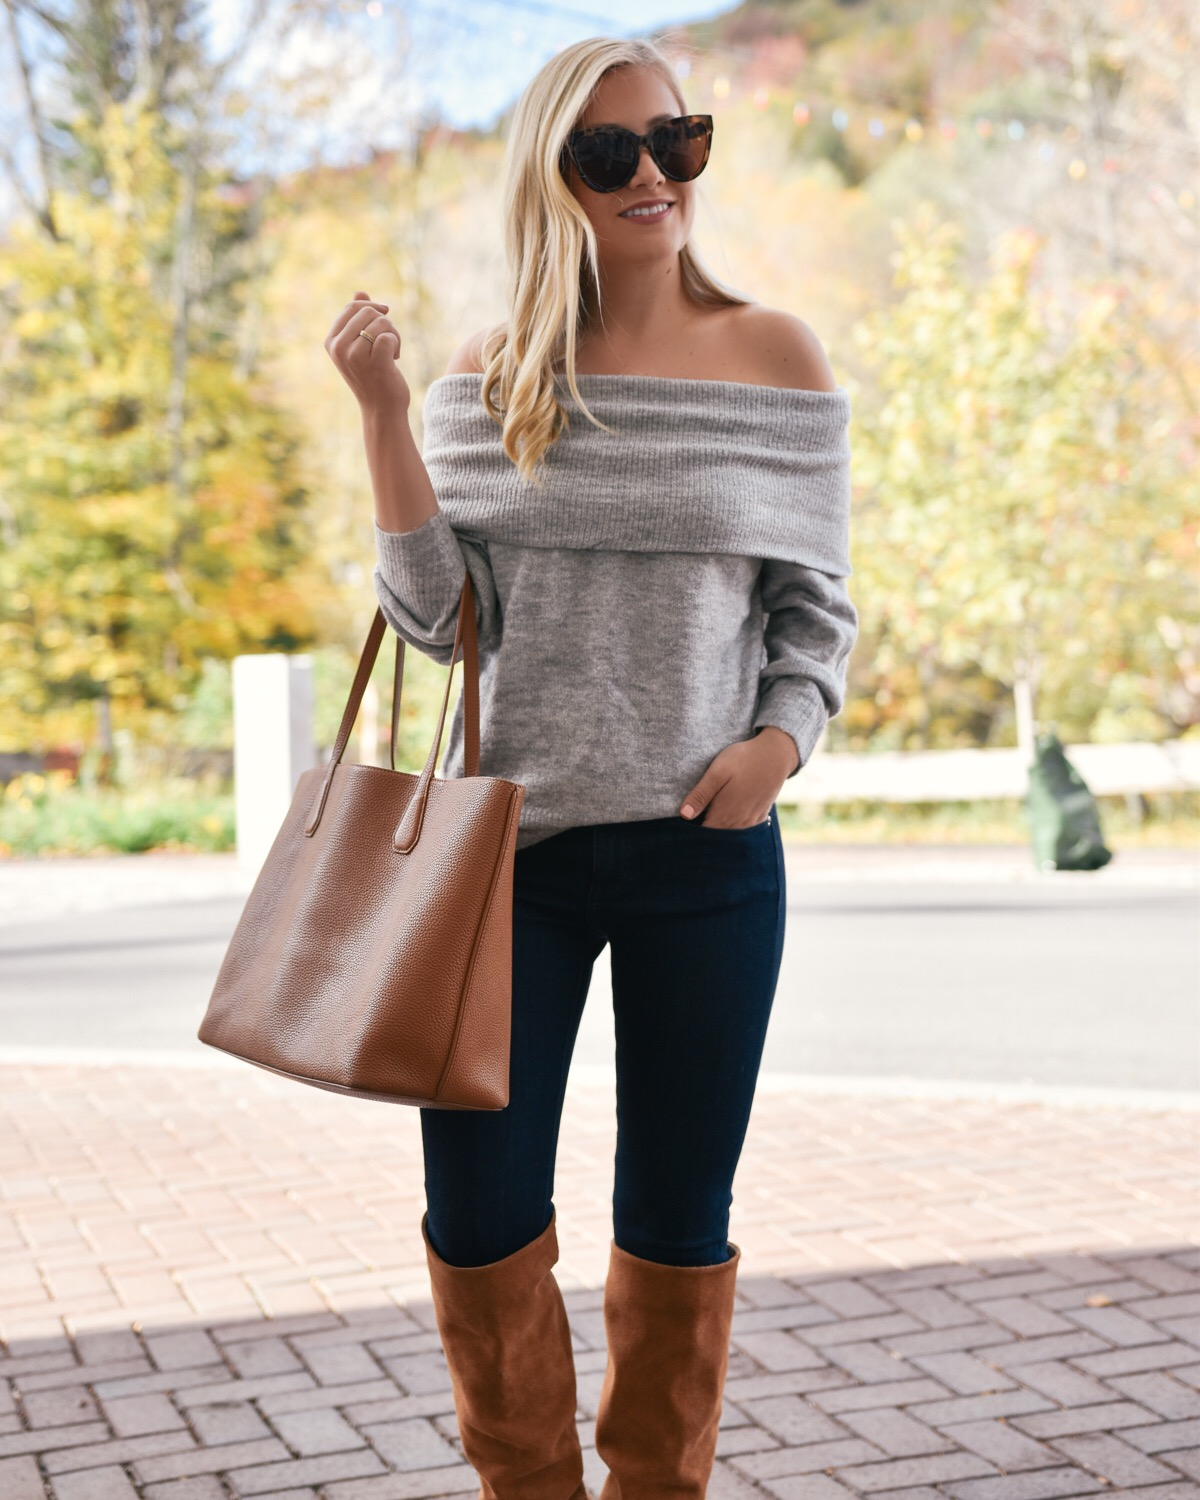 Grey off the shoulder sweater, over the knee boots, fall outfit, fall style, fall outfit inspiration, camel tote bag, le specs sunglasses, grey sweater